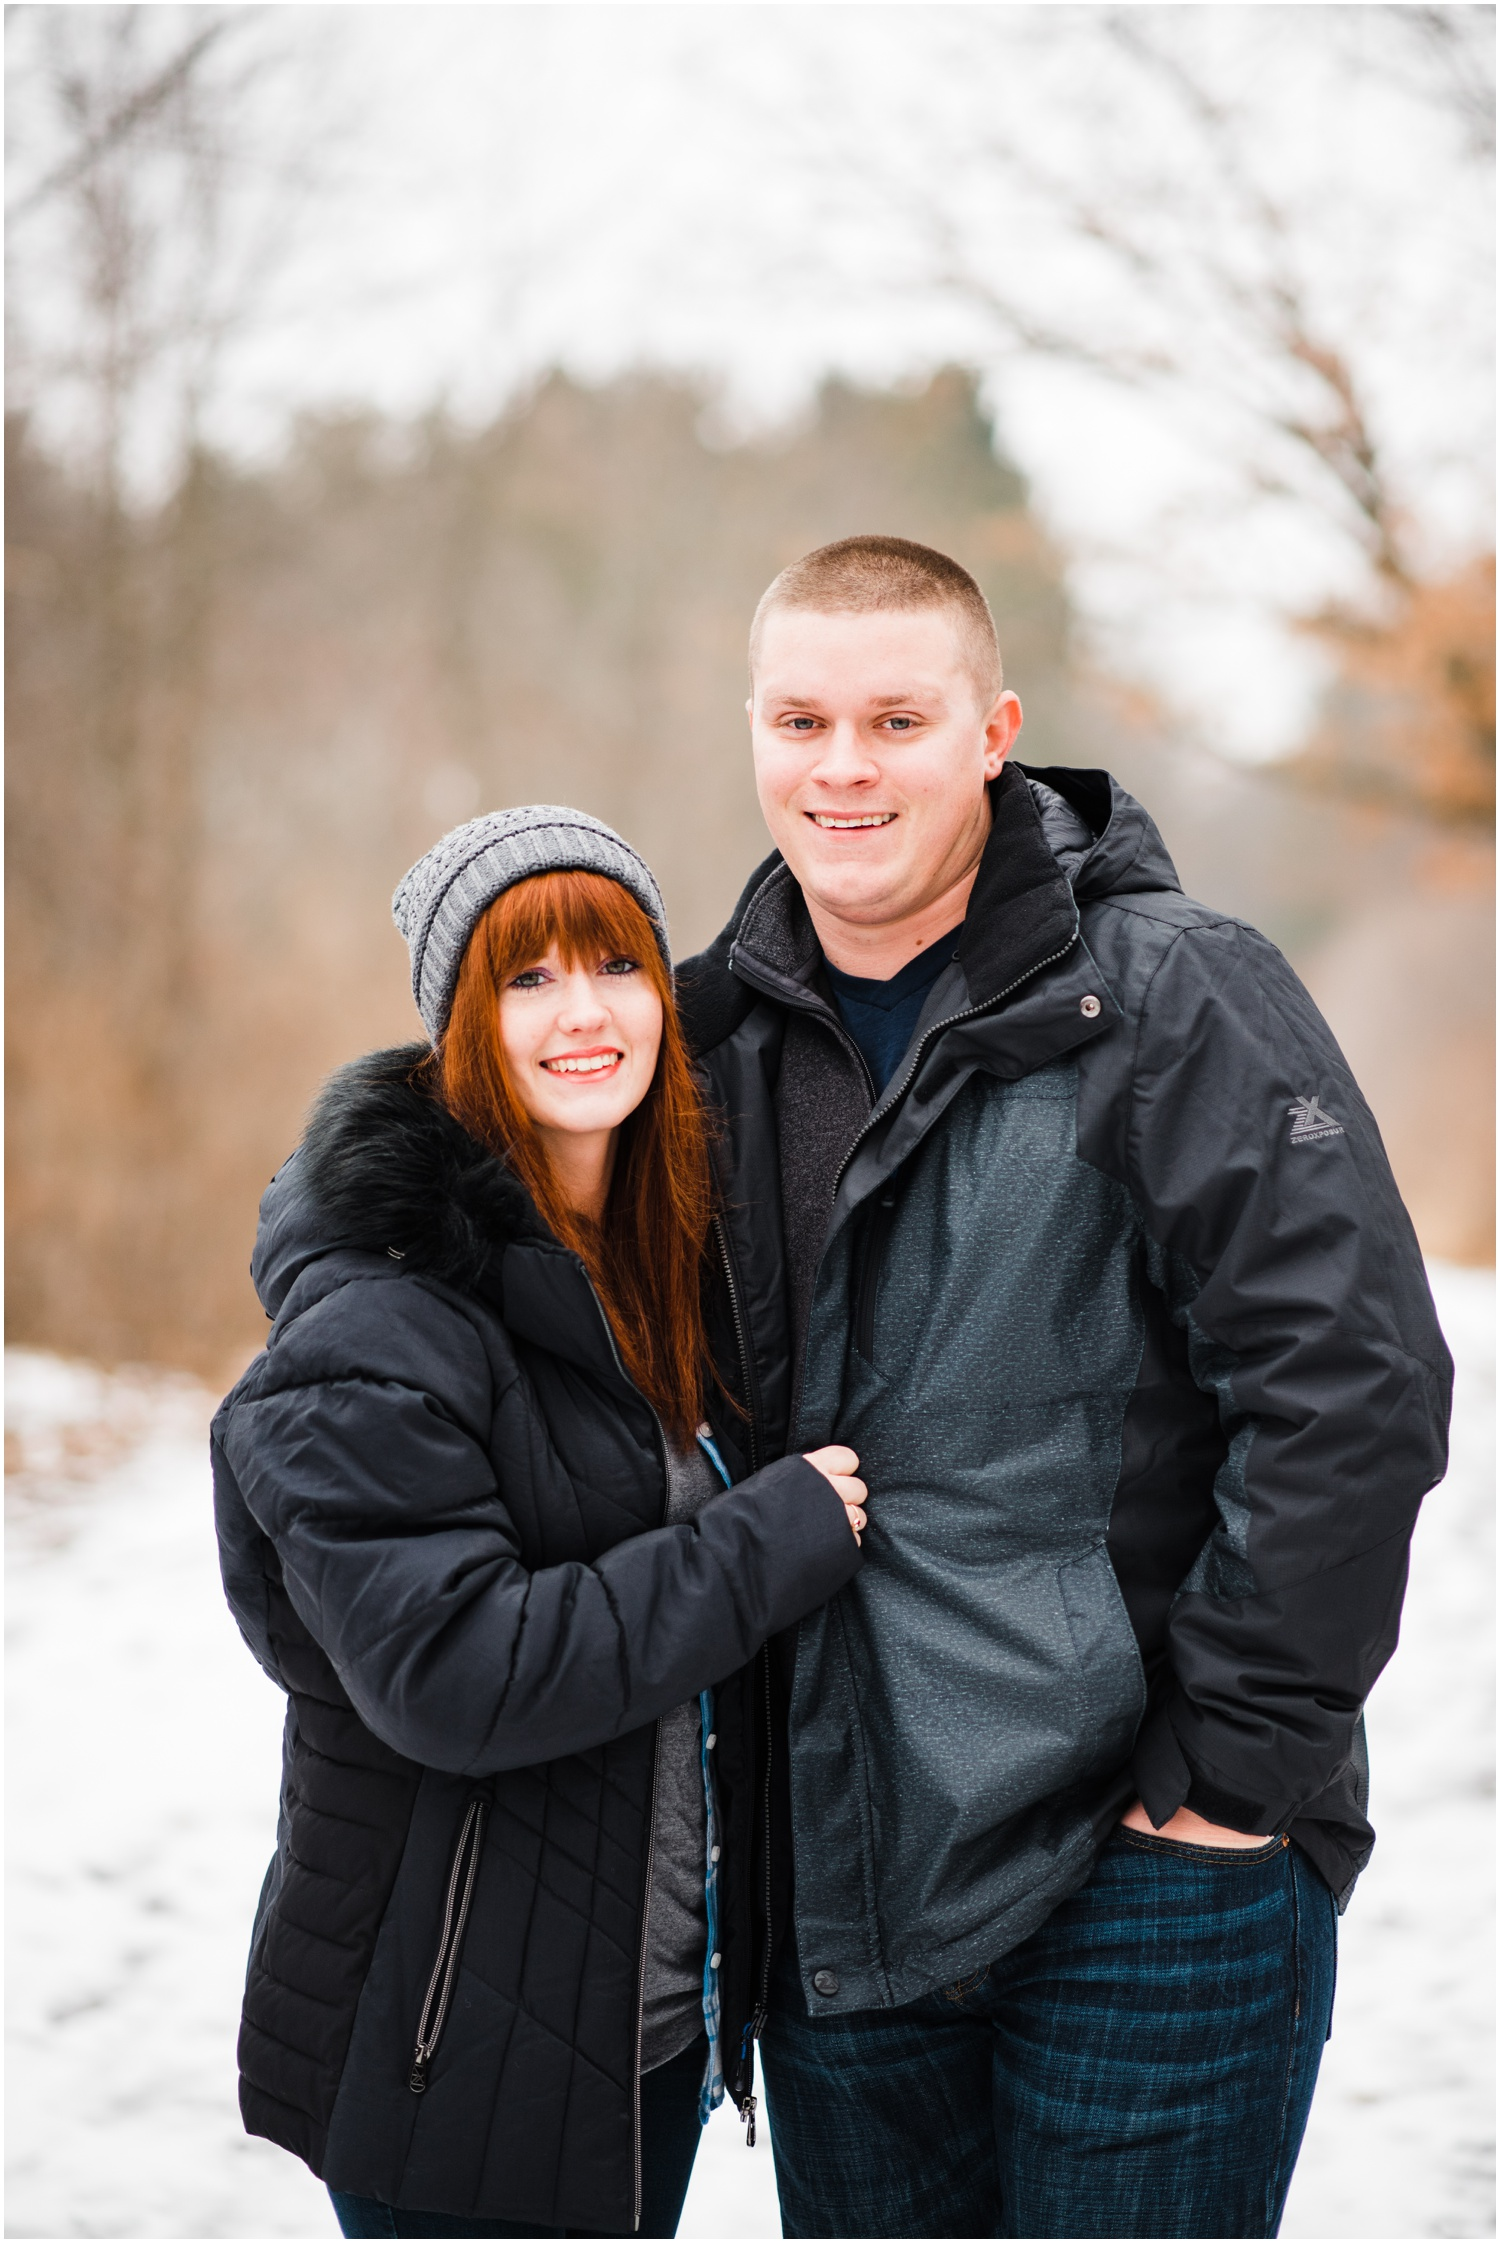 Devils-Lake-Baraboo-Wisconsin-Engagement-Photographer-Lindsey-And-Cody-Engaged-1.jpg